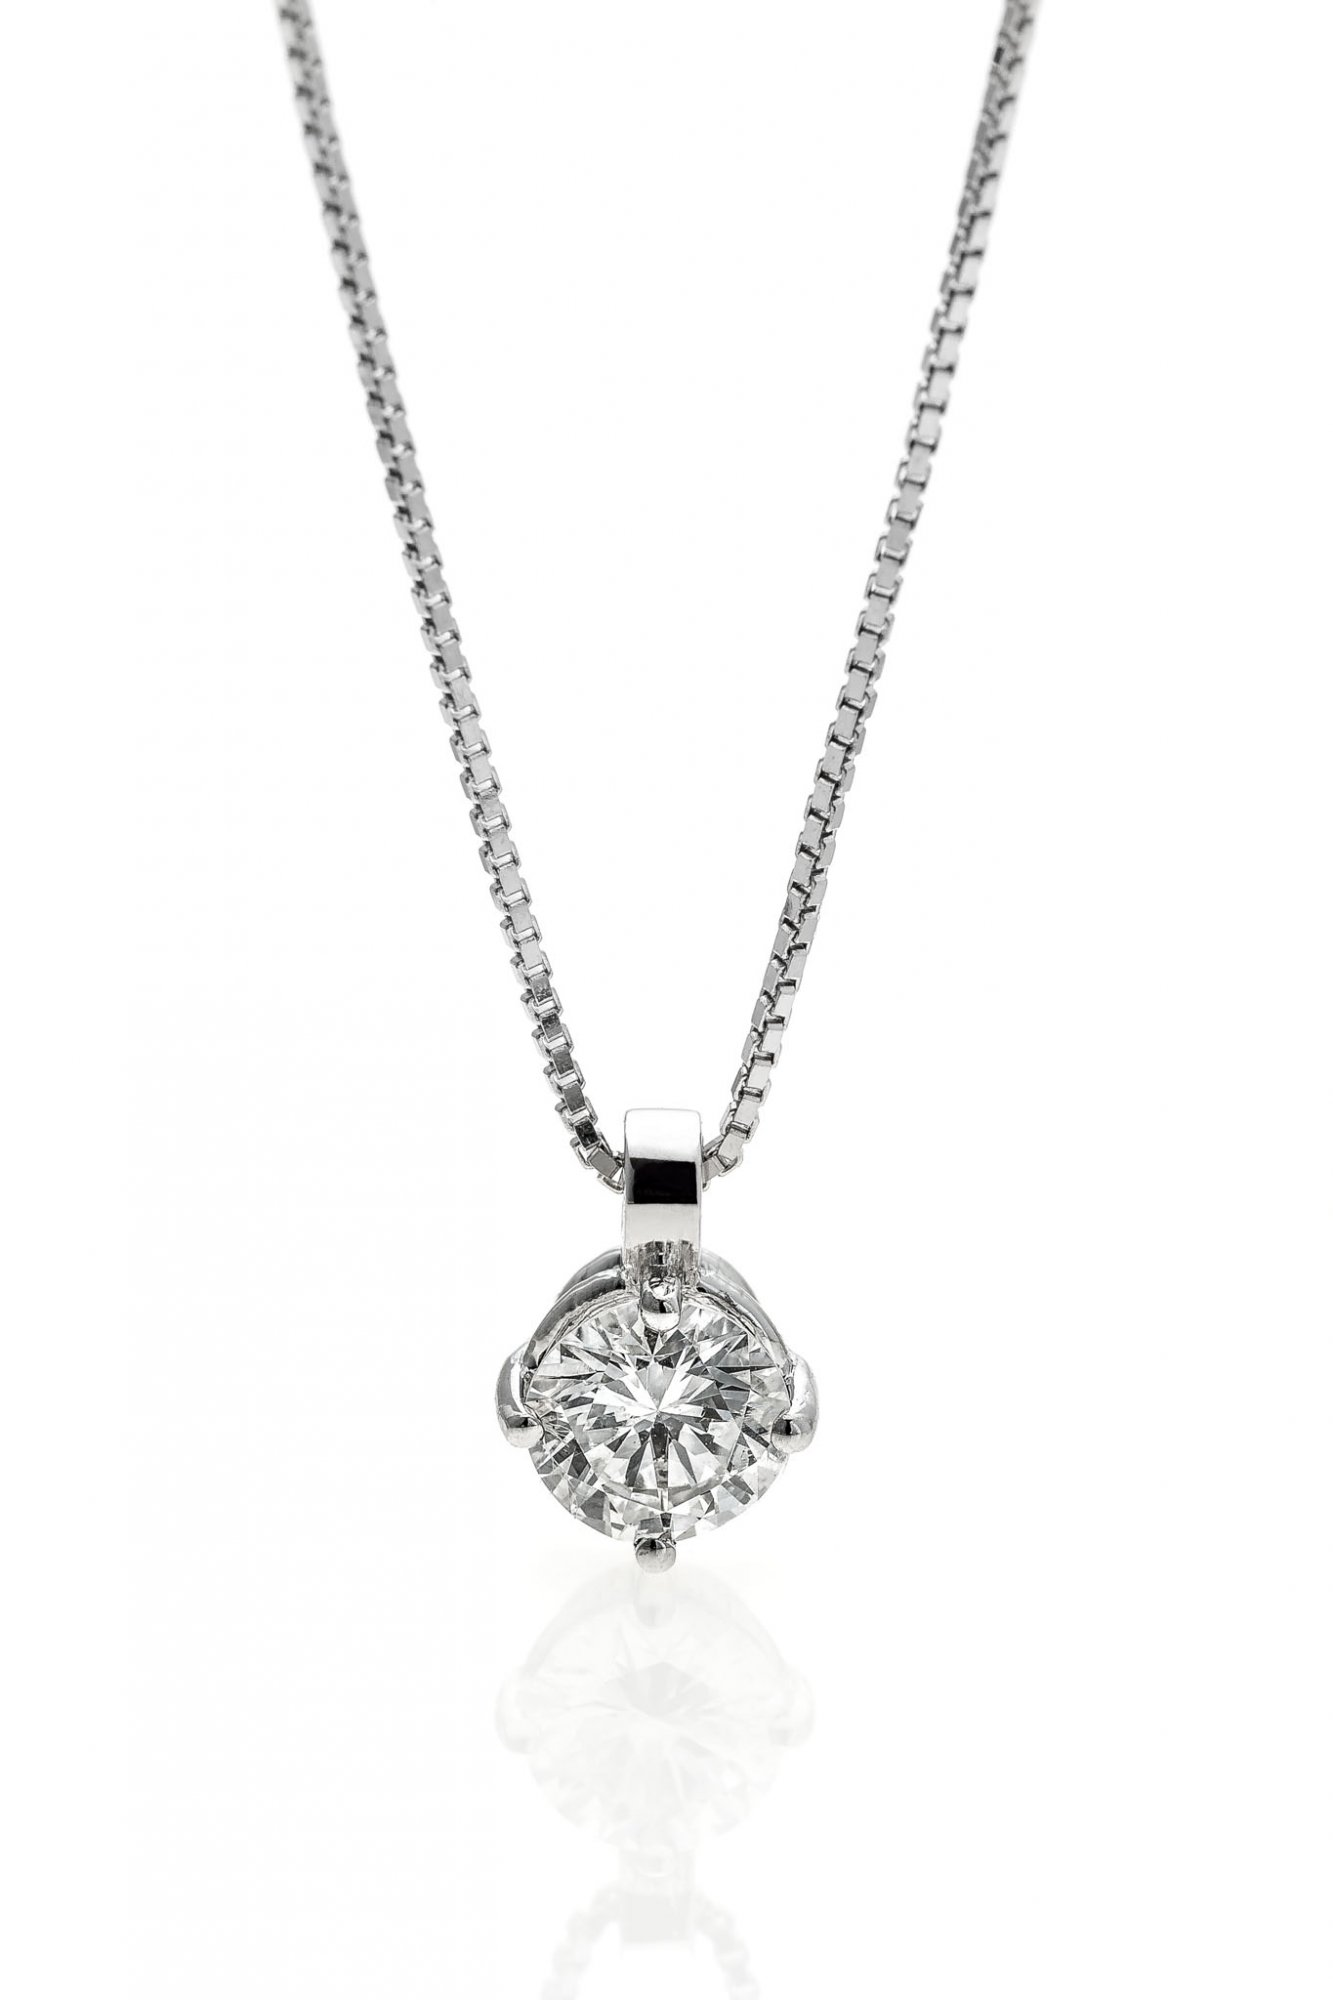 18 KT white gold necklace with round brilliant cut diamonds ct.0.70 IF E color